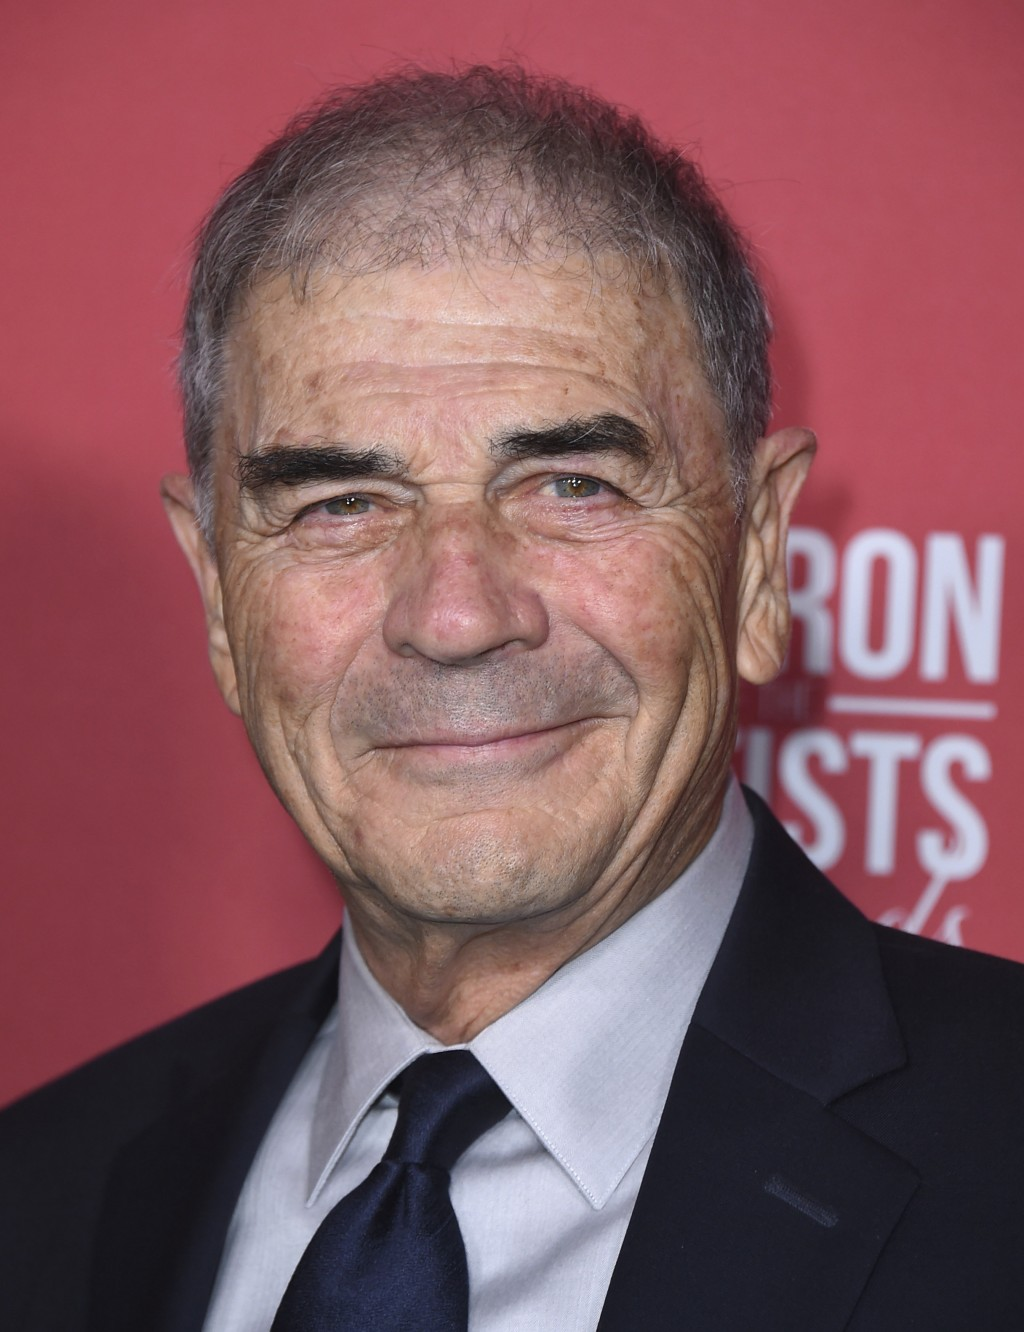 FILE - In this Nov. 8, 2018, file photo, Robert Forster arrives at the Patron of the Artists Awards at the Wallis Annenberg Center for the Performing